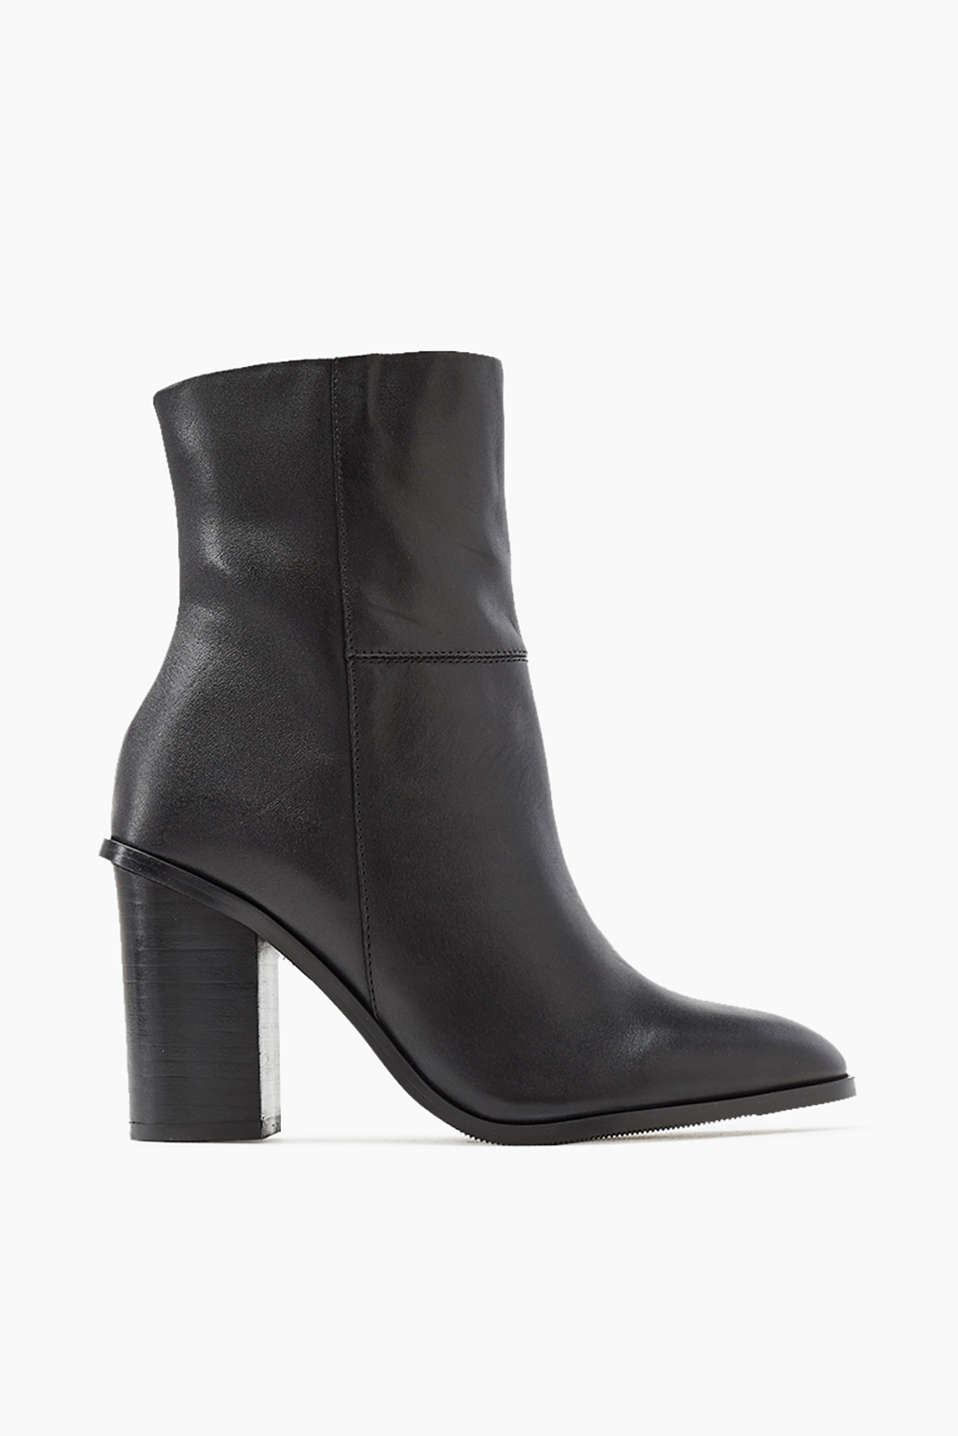 Ankle boots in smooth cowhide with a practical inside zip